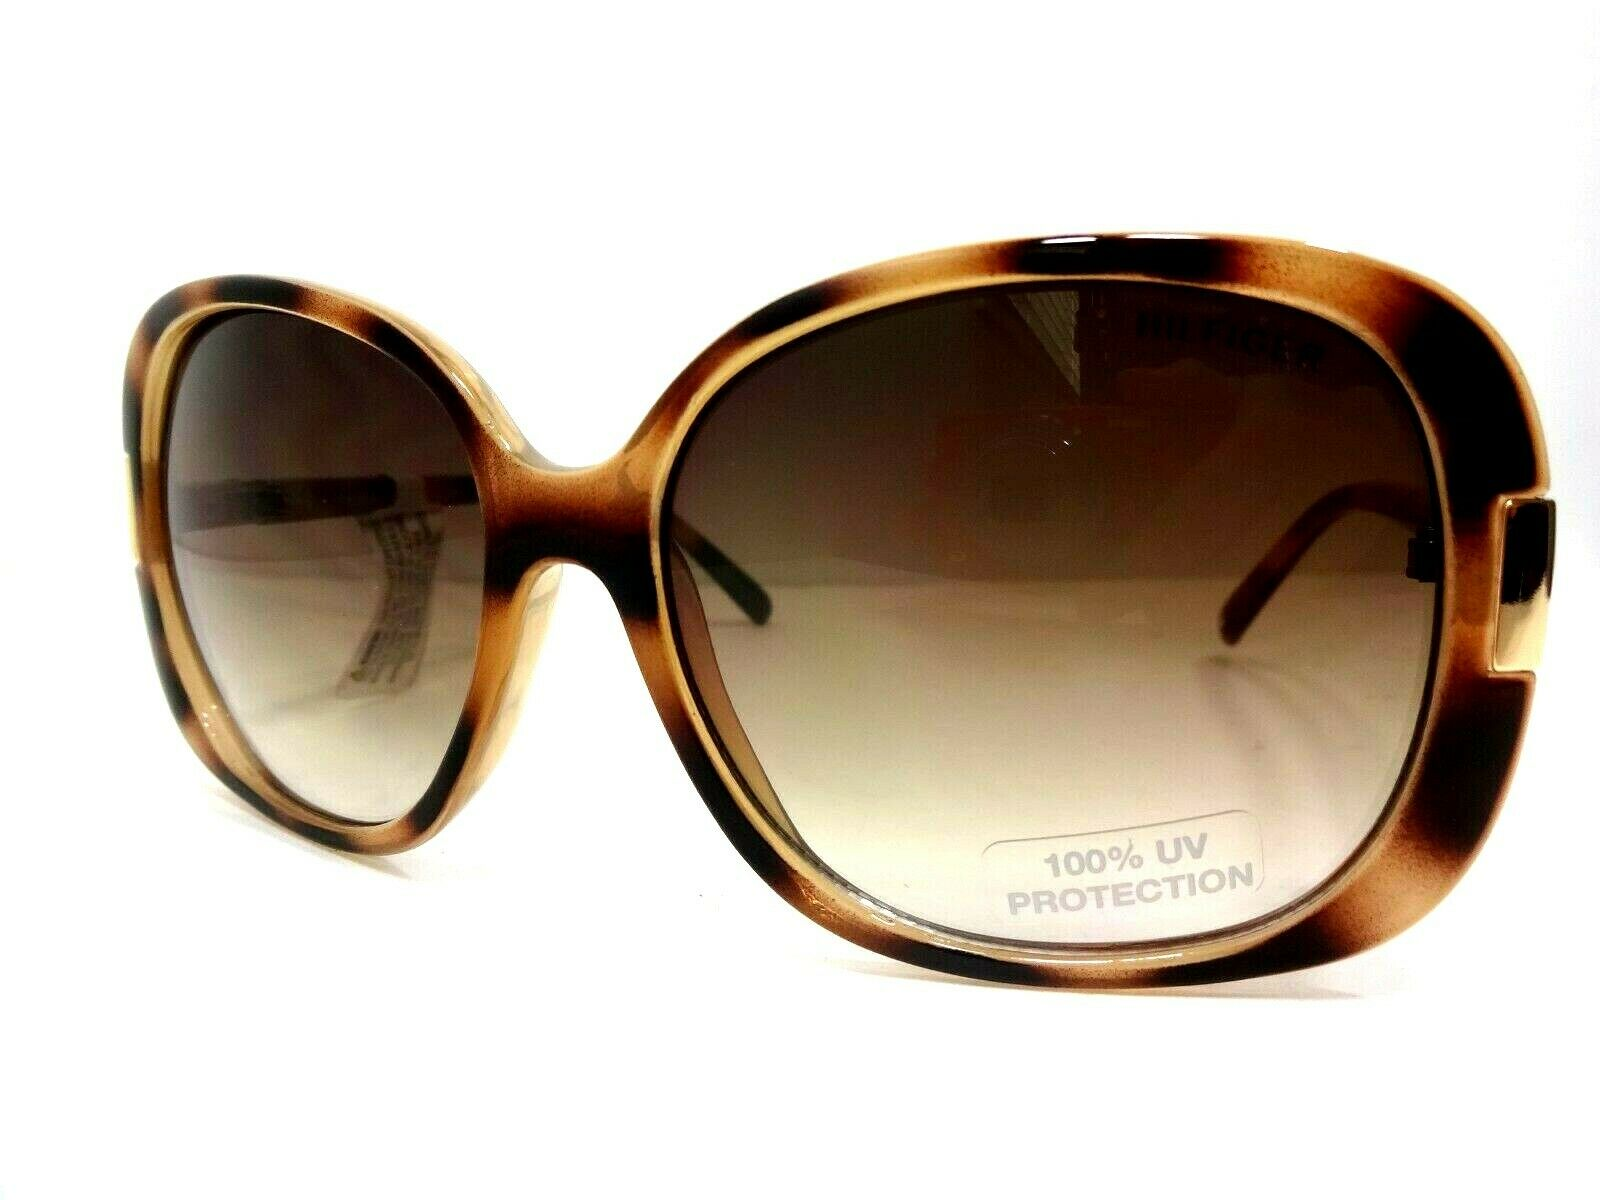 ***TOMMY HILFIGER LADIES OVERSIZED SUNGLASSES, LEOPARD, BRAND NEW AND AUTHENTIC!